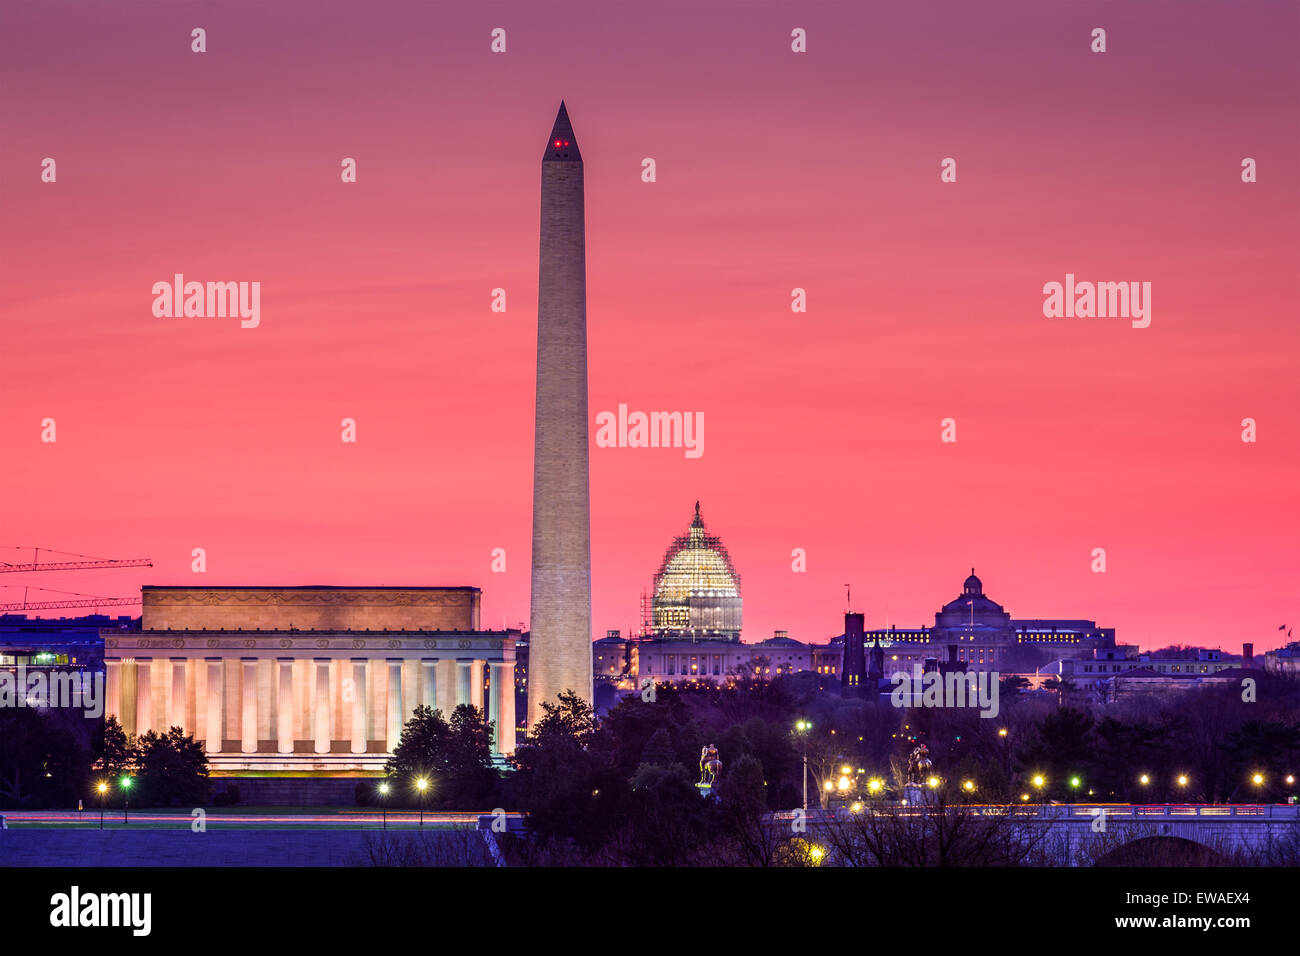 Washington DC, USA skyline. - Stock Image